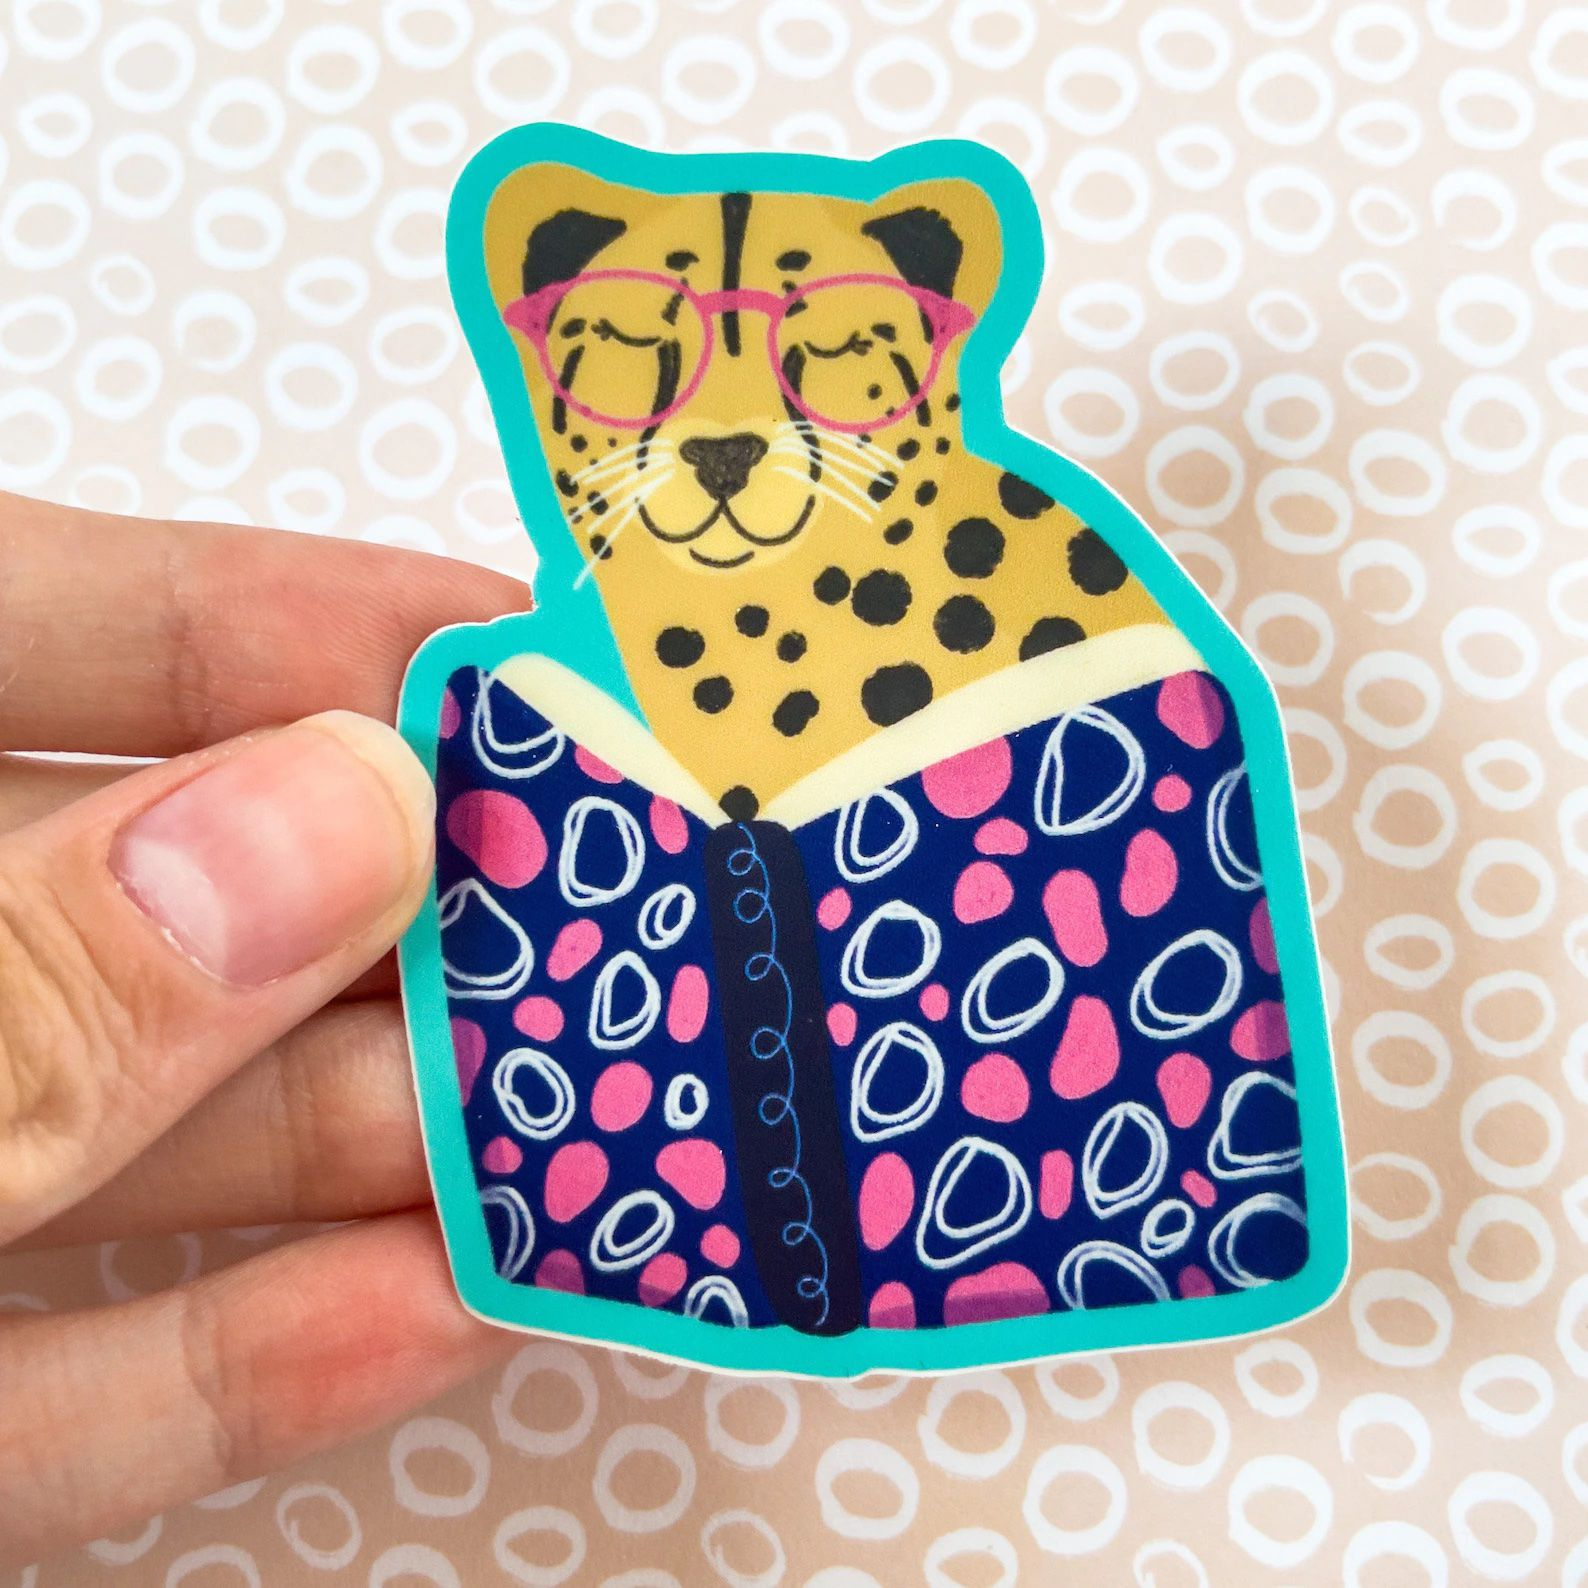 A sticker depicting a cheetah in pink glasses reading a book that is decorated with blue, pink, and white squiggles.